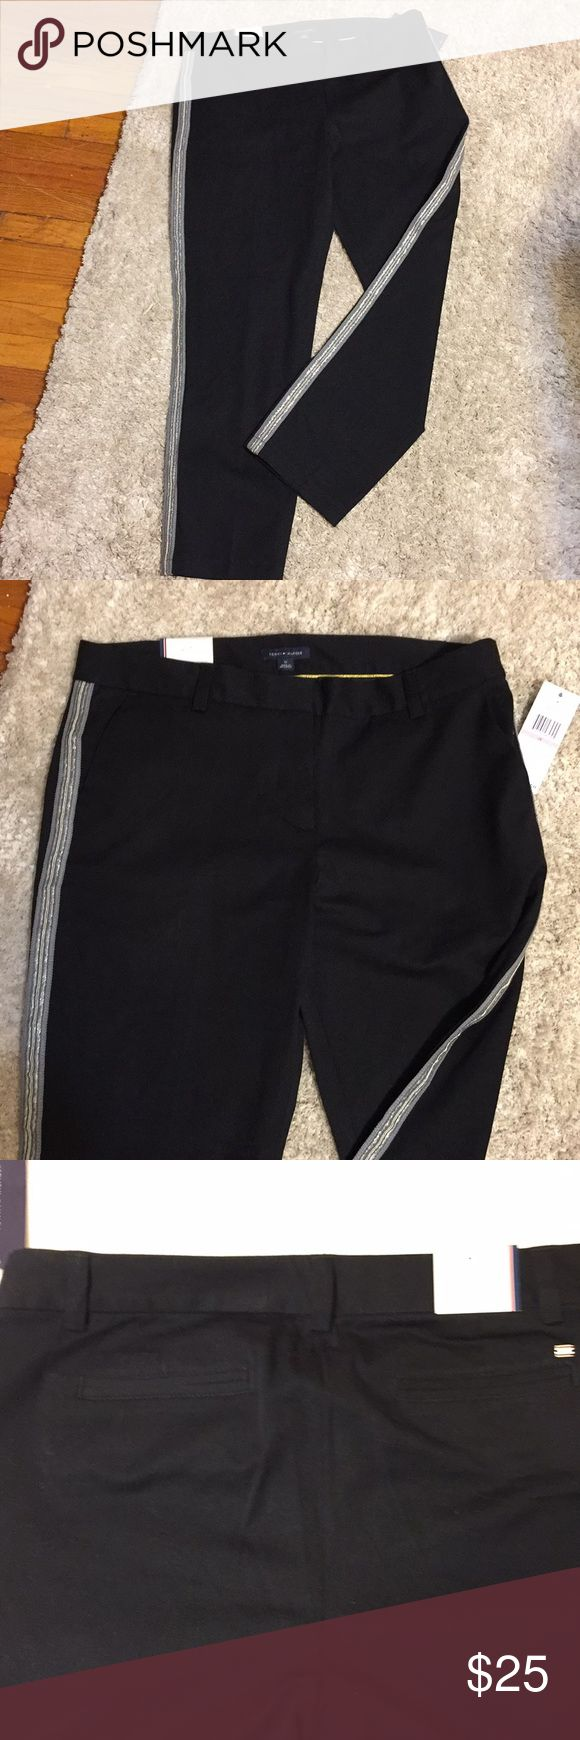 """NWT Tommy Hilfiger Straight LegBlack Pants size 10 NWT Tommy Hilfiger Straight Leg Black Pants.  Size 10. Black with silver 3/4""""  piping on side of pants. Side pockets and on back of pants. Nice pants to wear with silver heels. Dress up of down.  Measurements laying down flat  16"""" Waste  10"""" Rise 26"""" Inseam  7"""" ankle Tommy Hilfiger Pants Straight Leg"""